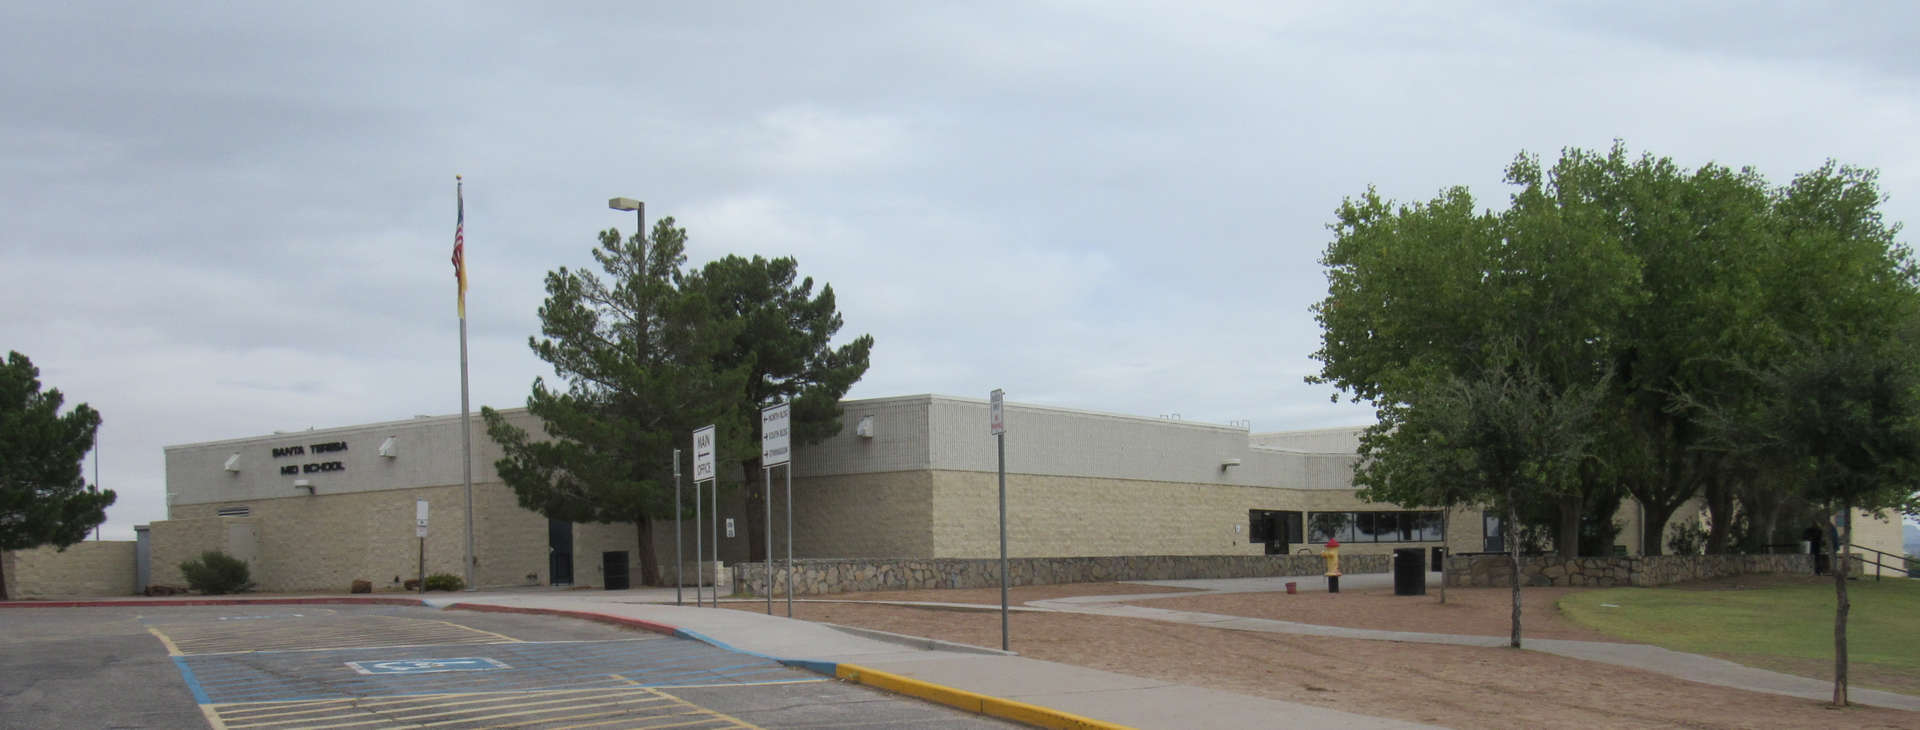 Santa Teresa Middle School building